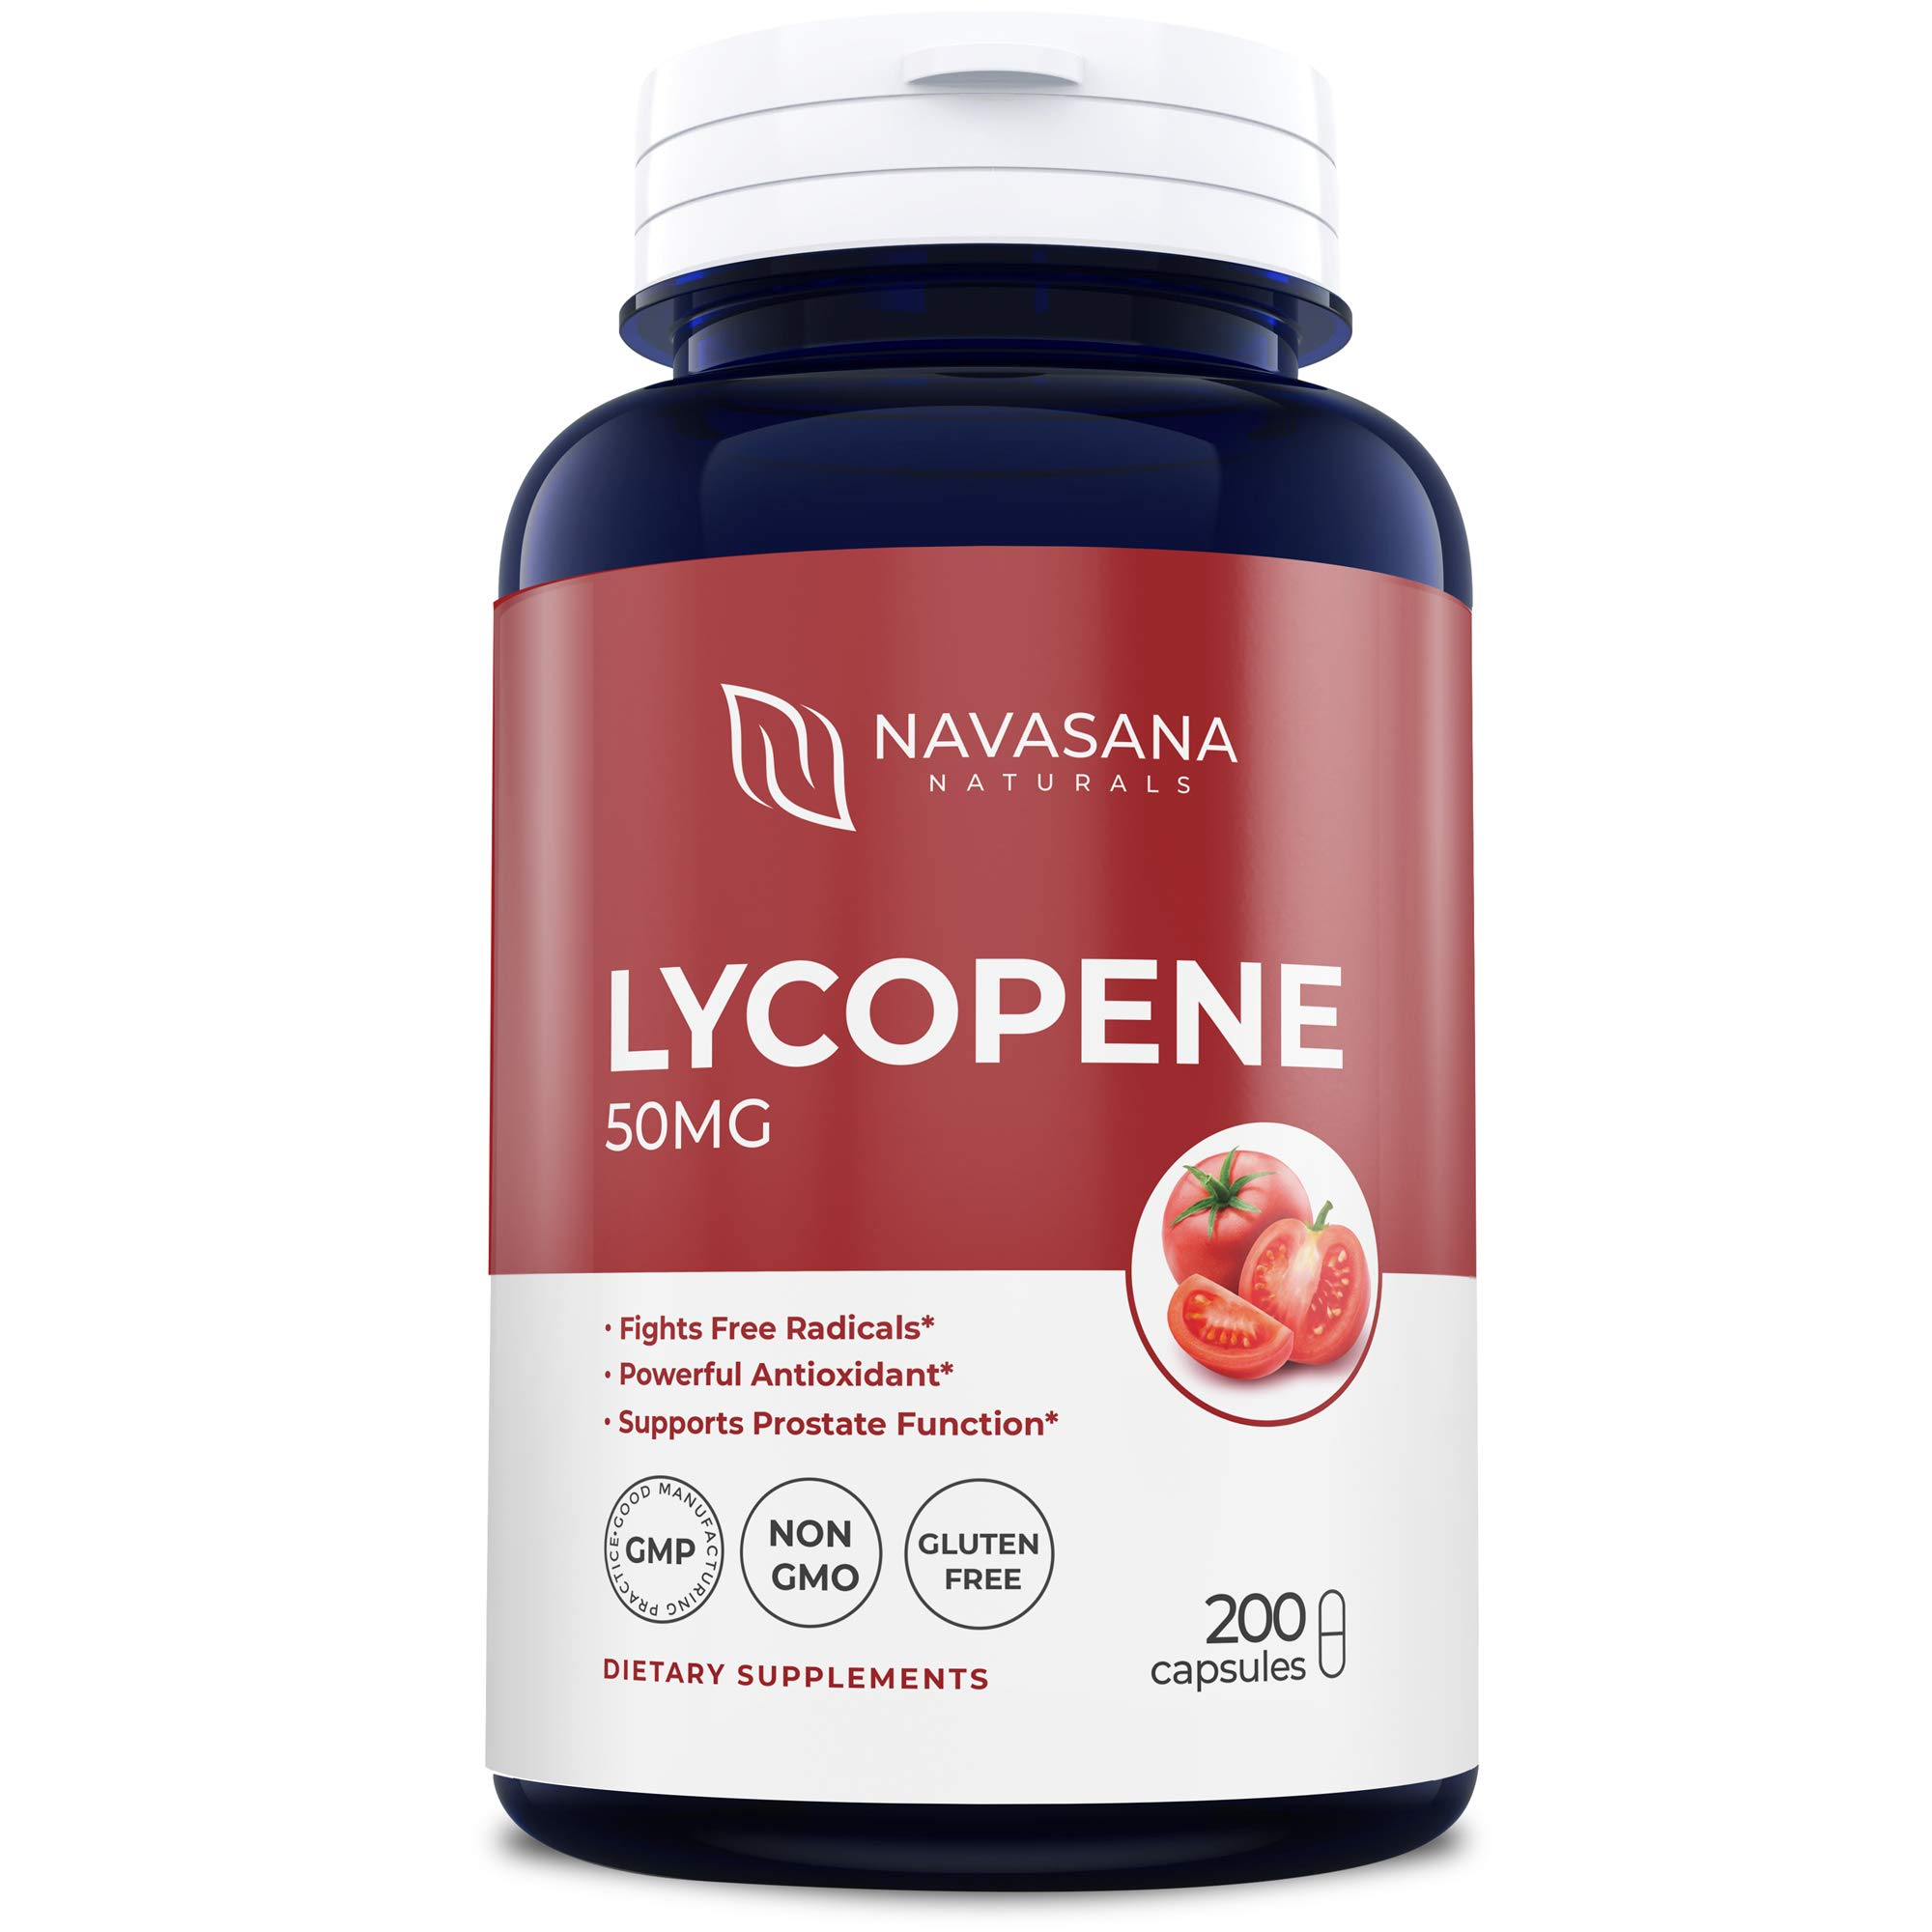 Lycopene 50MG - 200 Day Supply - 100% Natural Antioxidant - Non GMO - Gluten Free - Pure Tomato Extract for Cardiovascular Support, Prostate, Vision - 100% Risk Free Money Back Guarantee by Navasana Naturals